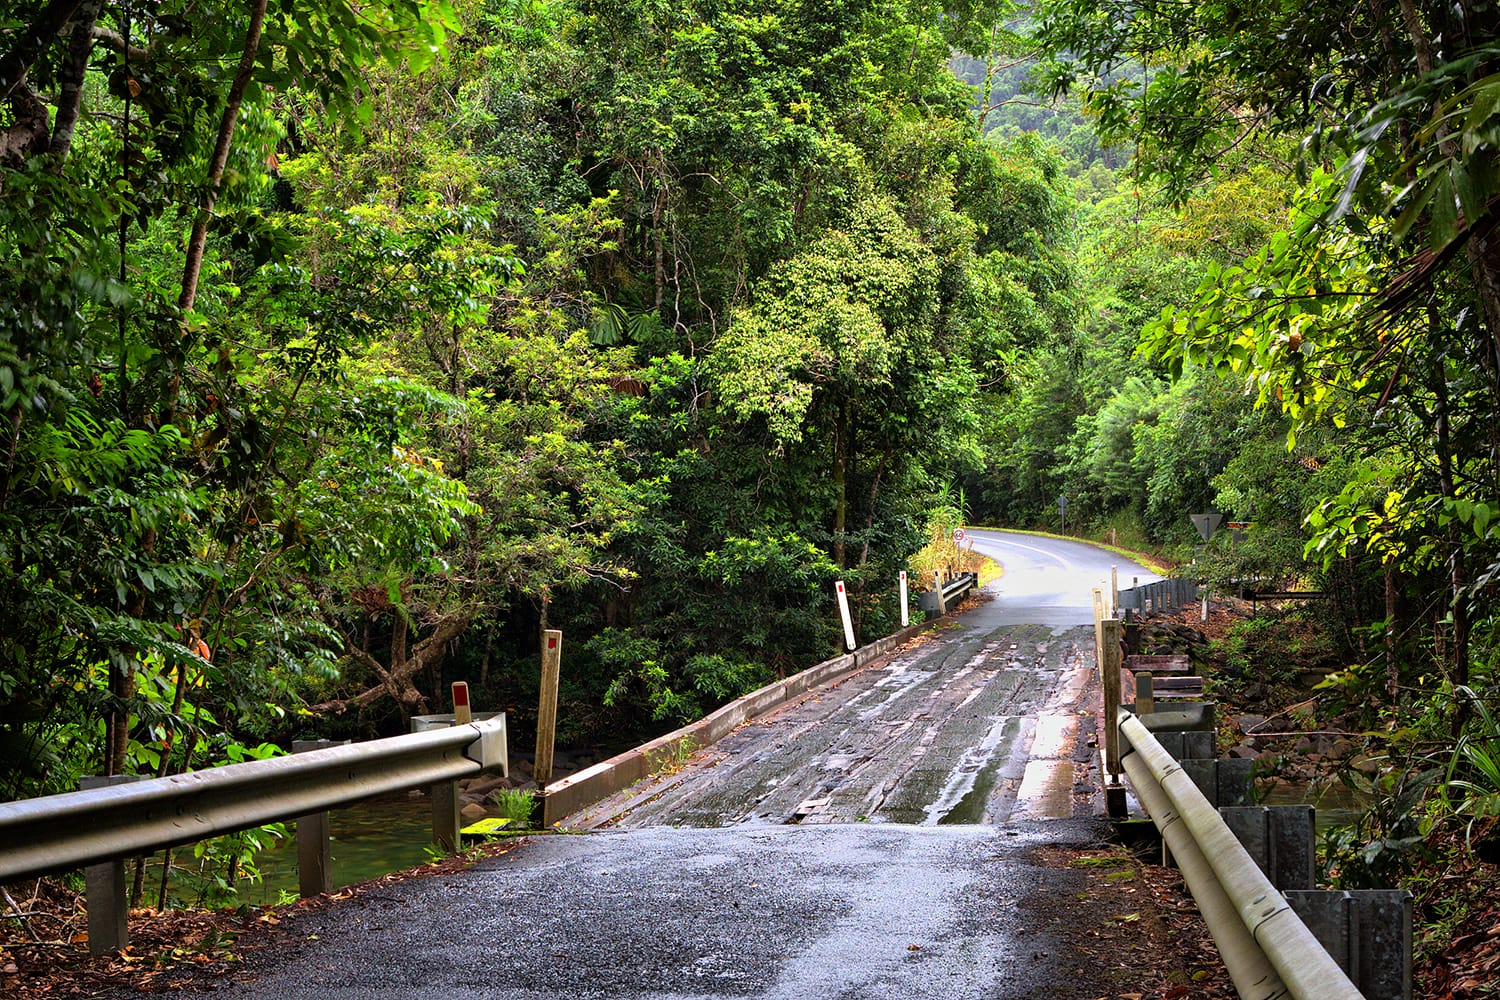 Road at Daintree National Park, Queensland, Australia